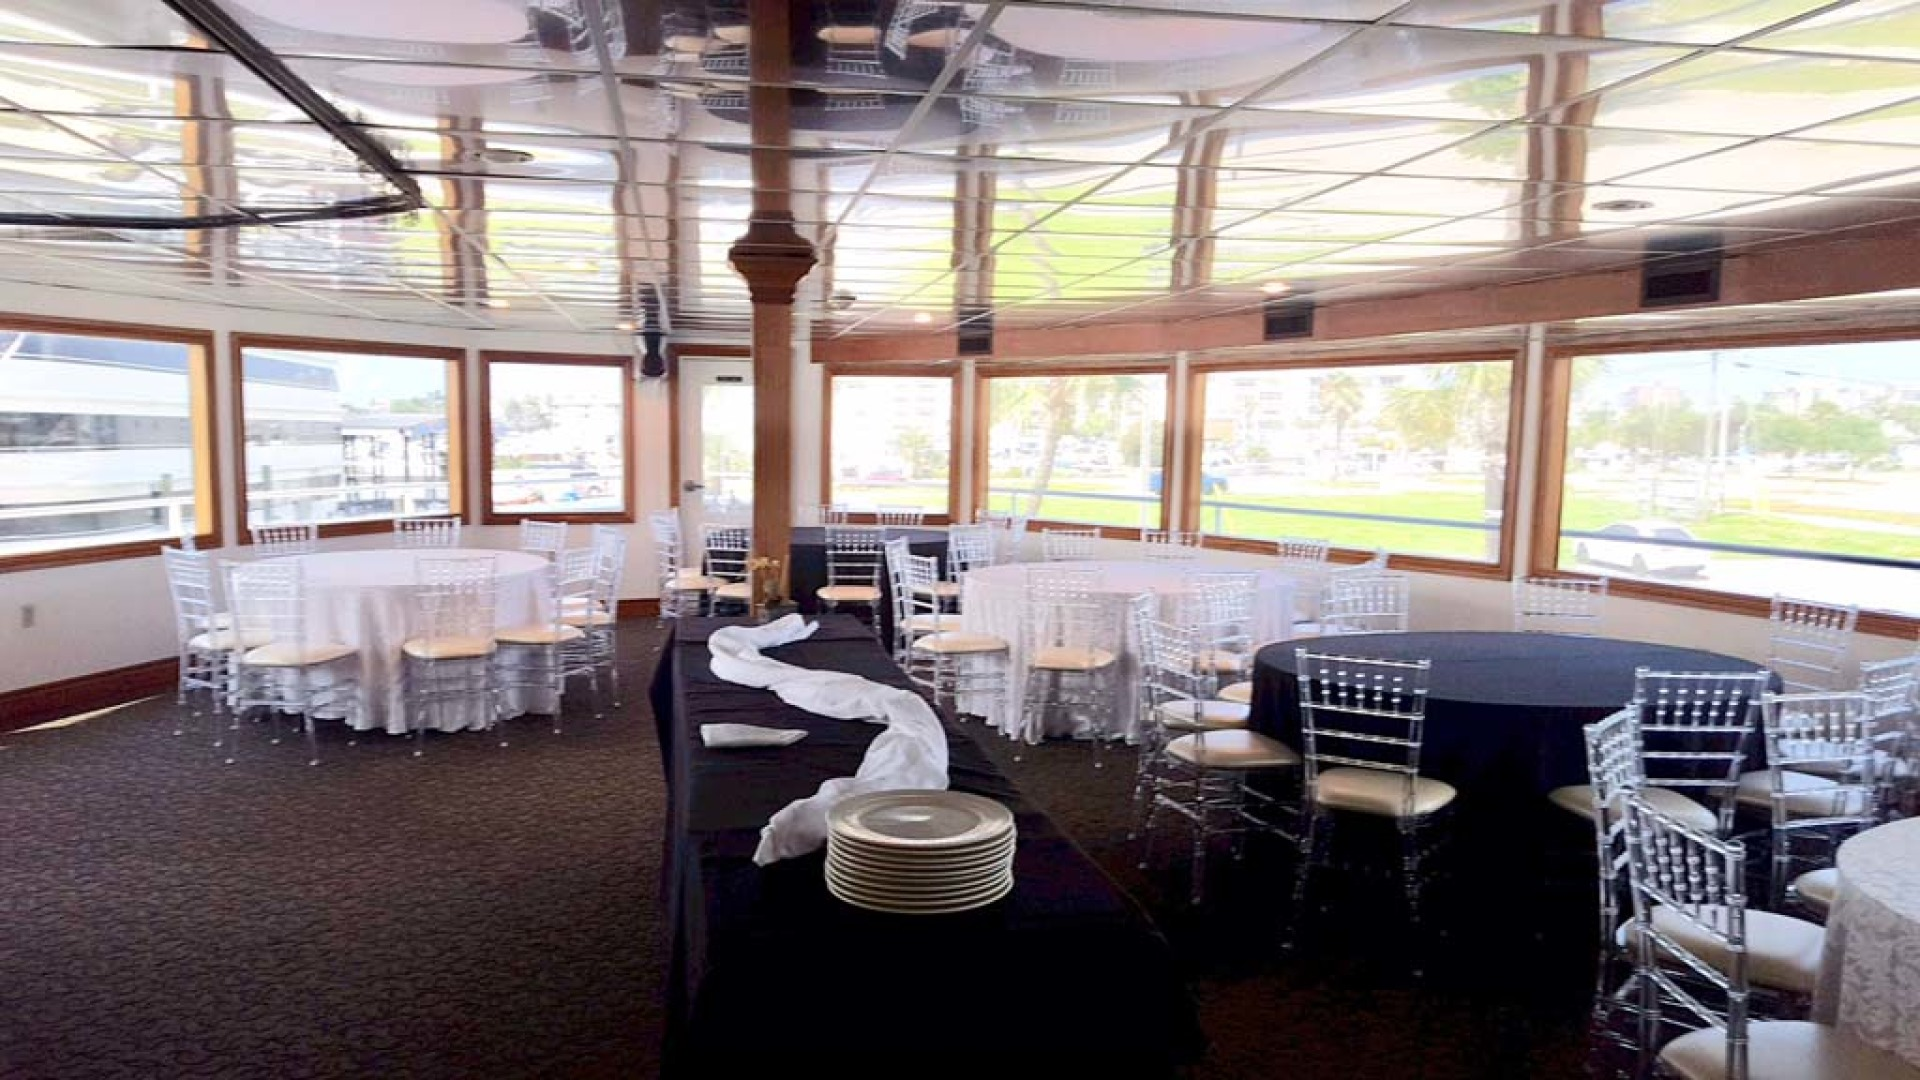 Custom-Keith Marine Dinner Boat 2006-Sir Winston Tampa-Florida-United States-Deck 2 The Crystal Room-1115549 | Thumbnail